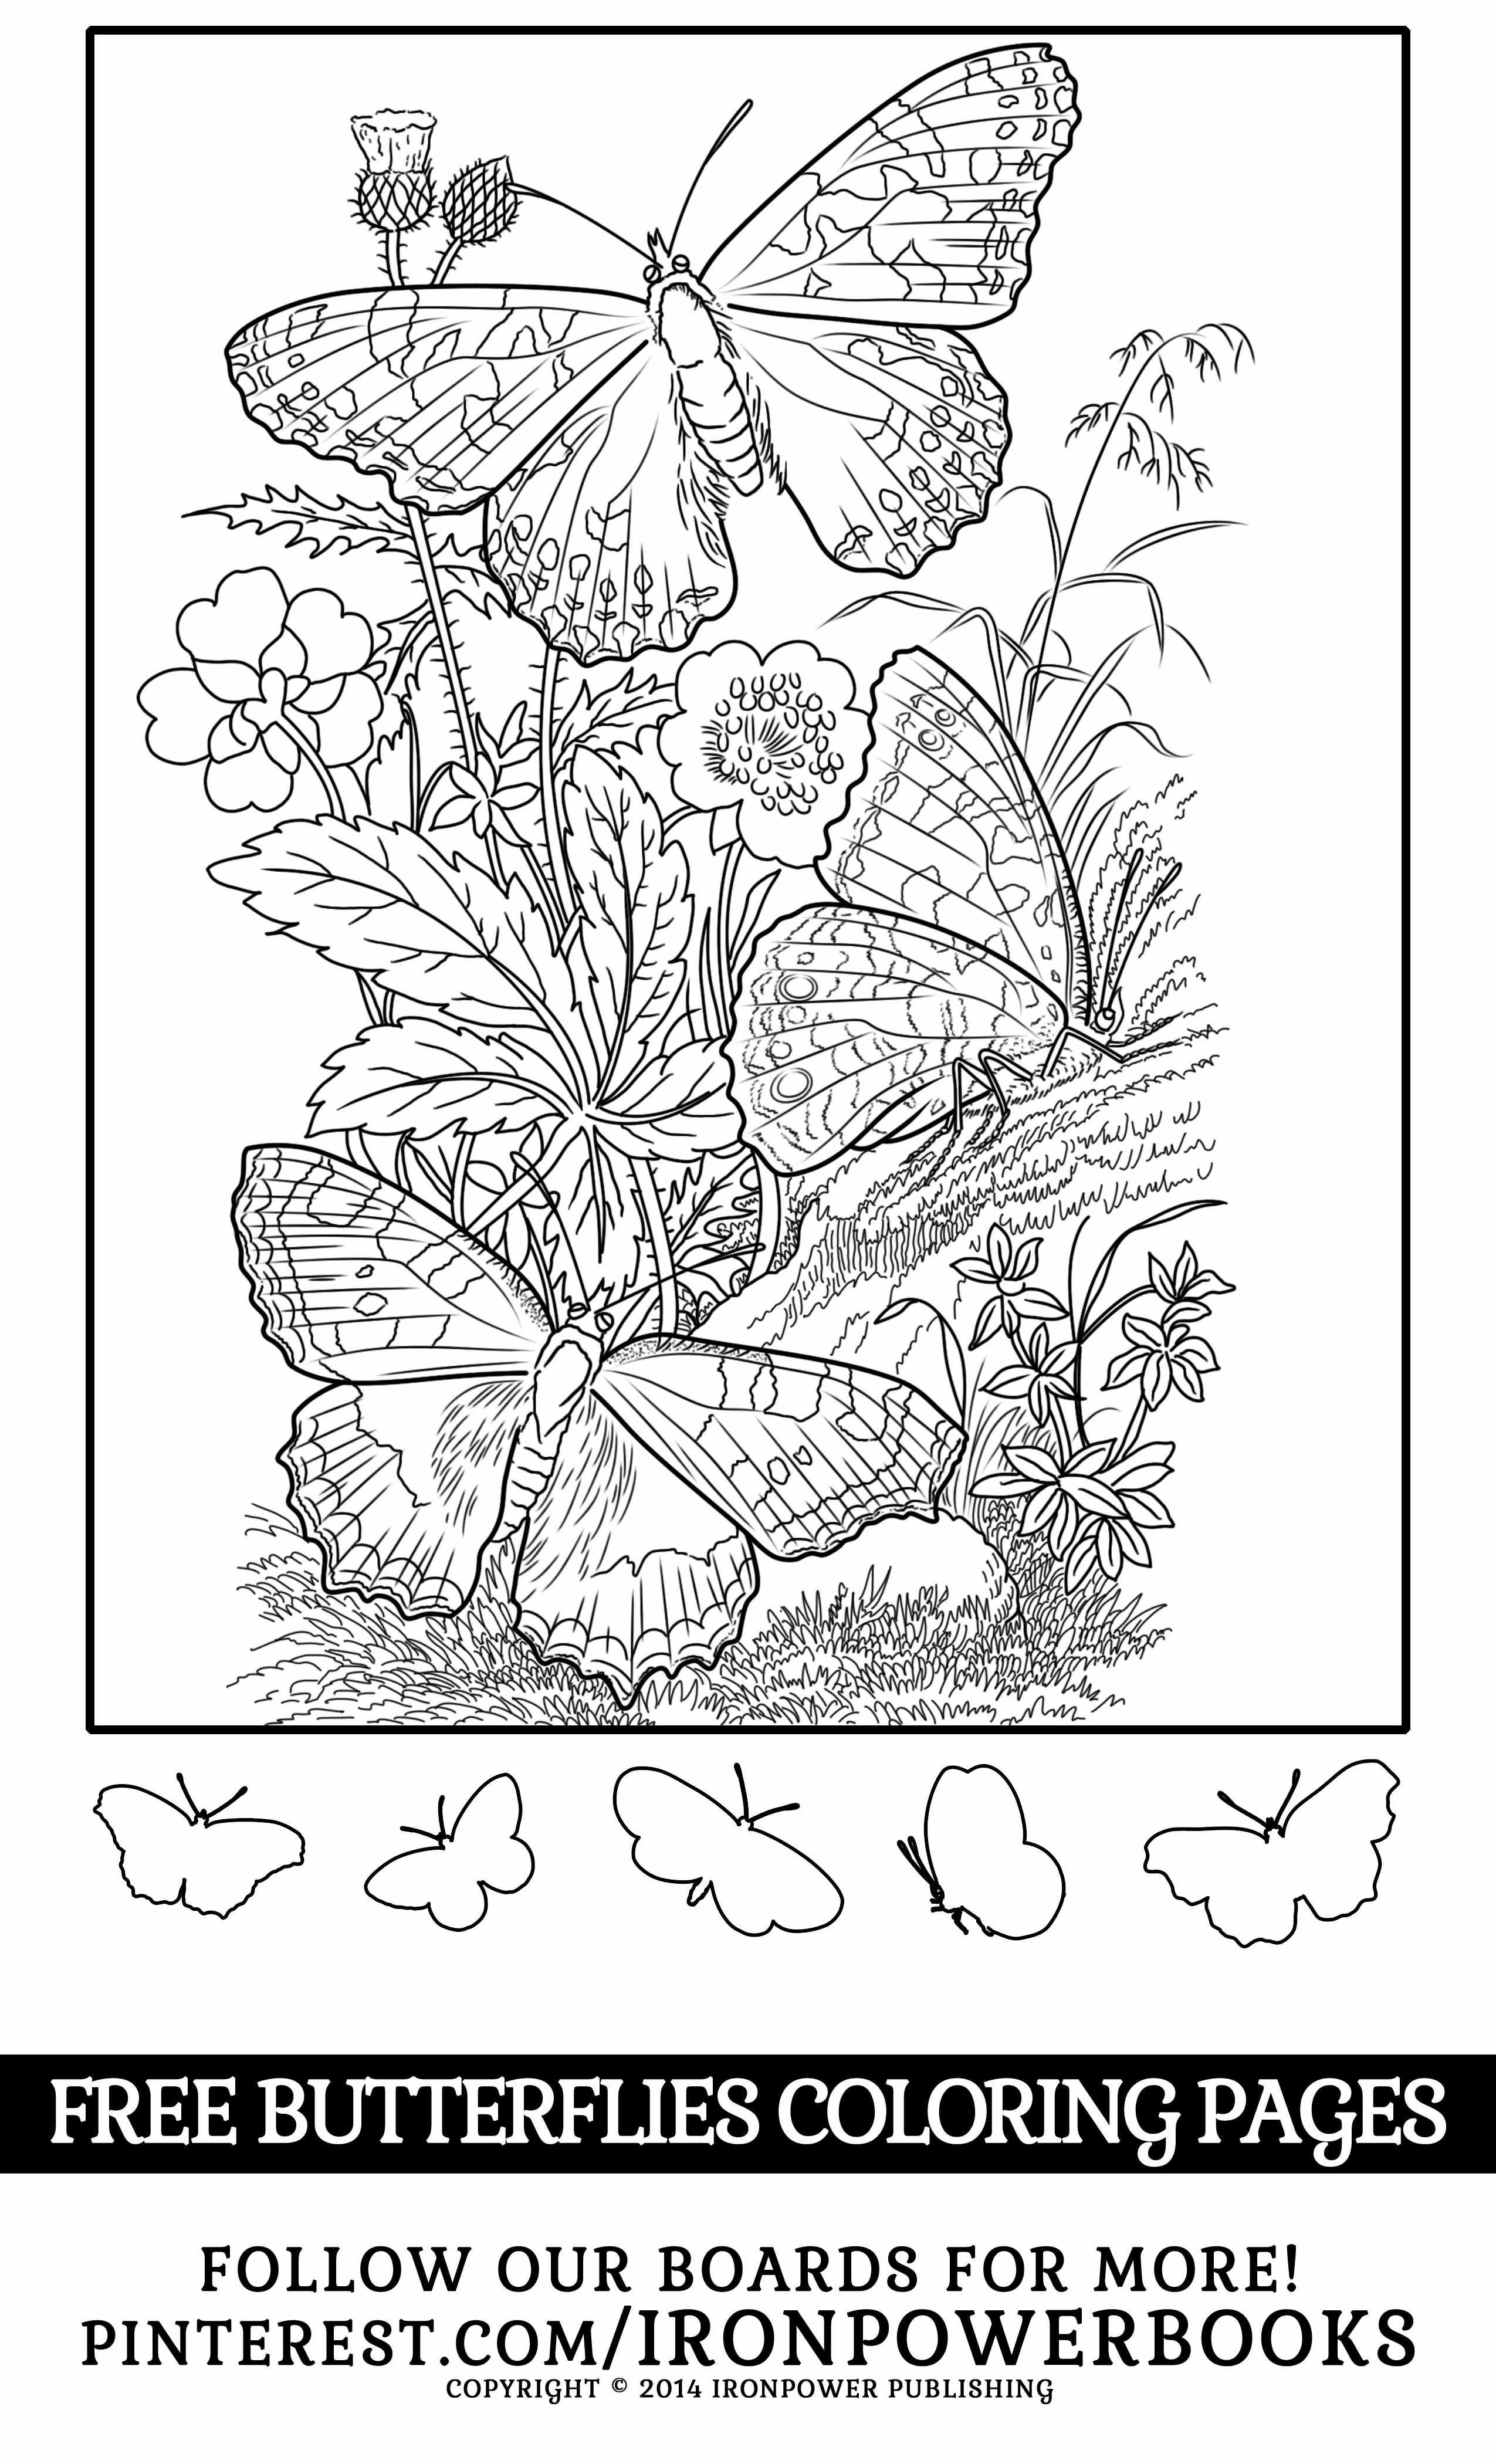 Free Butterfly Coloring Pages For Girls Please Use Freely For Personal Non Commercial Use Vi Butterfly Coloring Page Detailed Coloring Pages Coloring Pages [ 4200 x 2550 Pixel ]